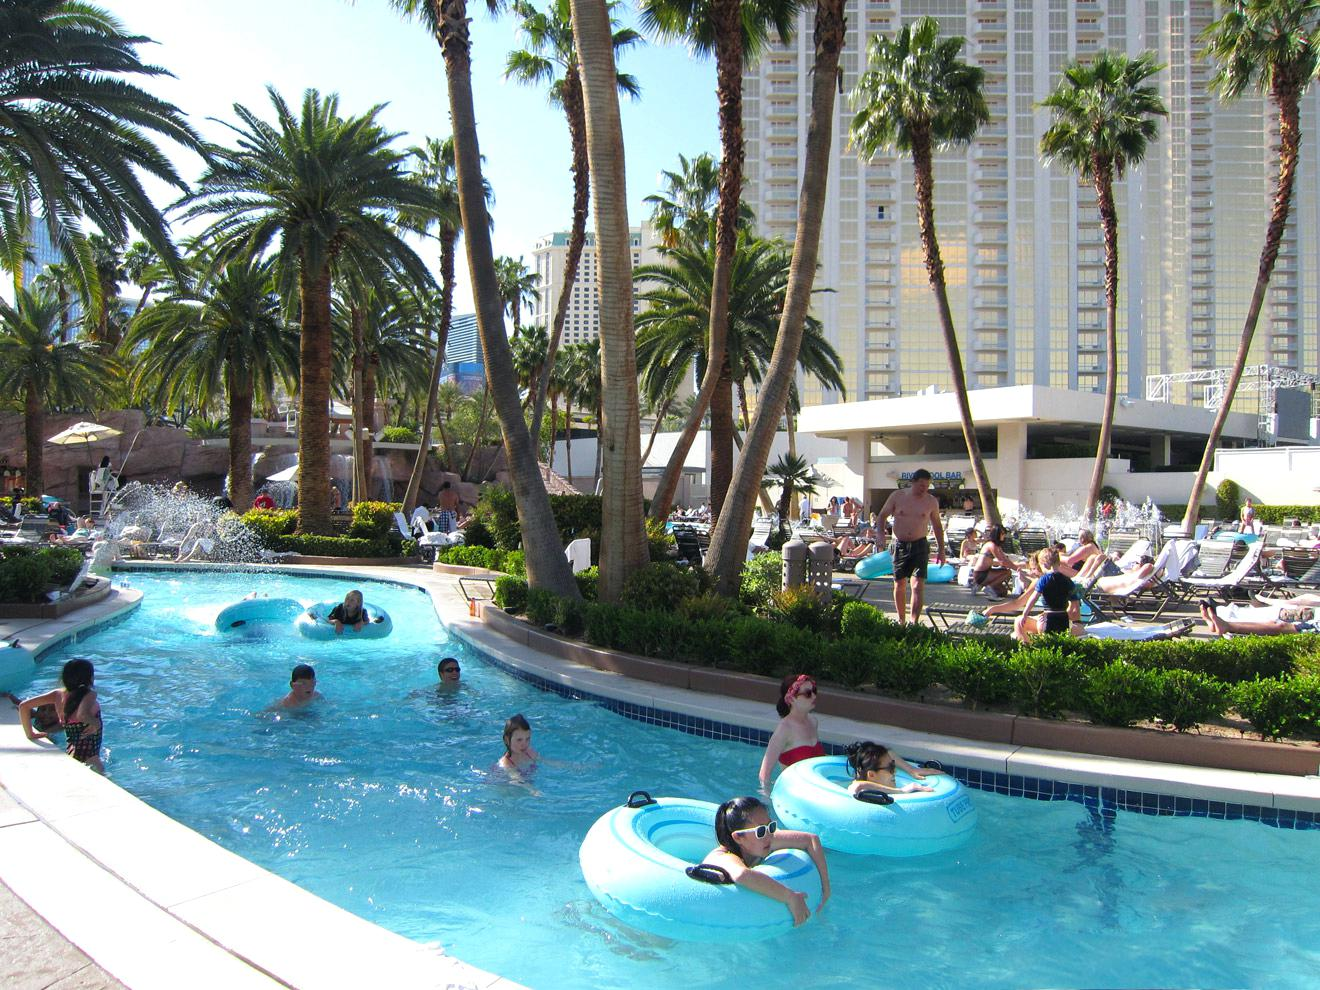 Top 5 Reasons Why You Need To Find The Best Las Vegas Hotel Deals For Your Family Vacation